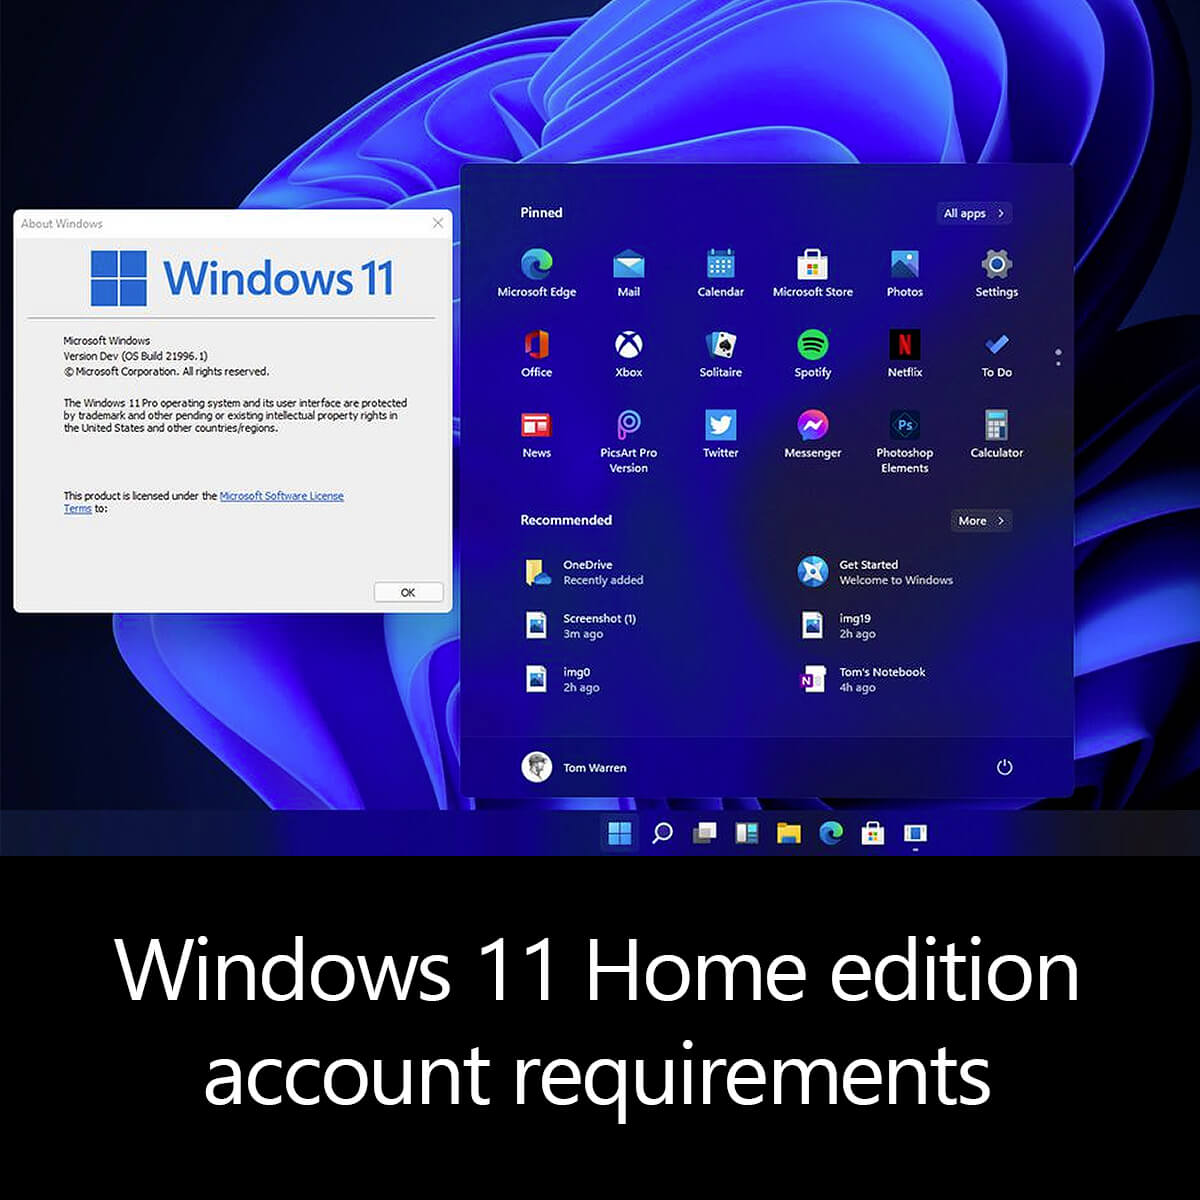 Windows 11 Home edition account requirements